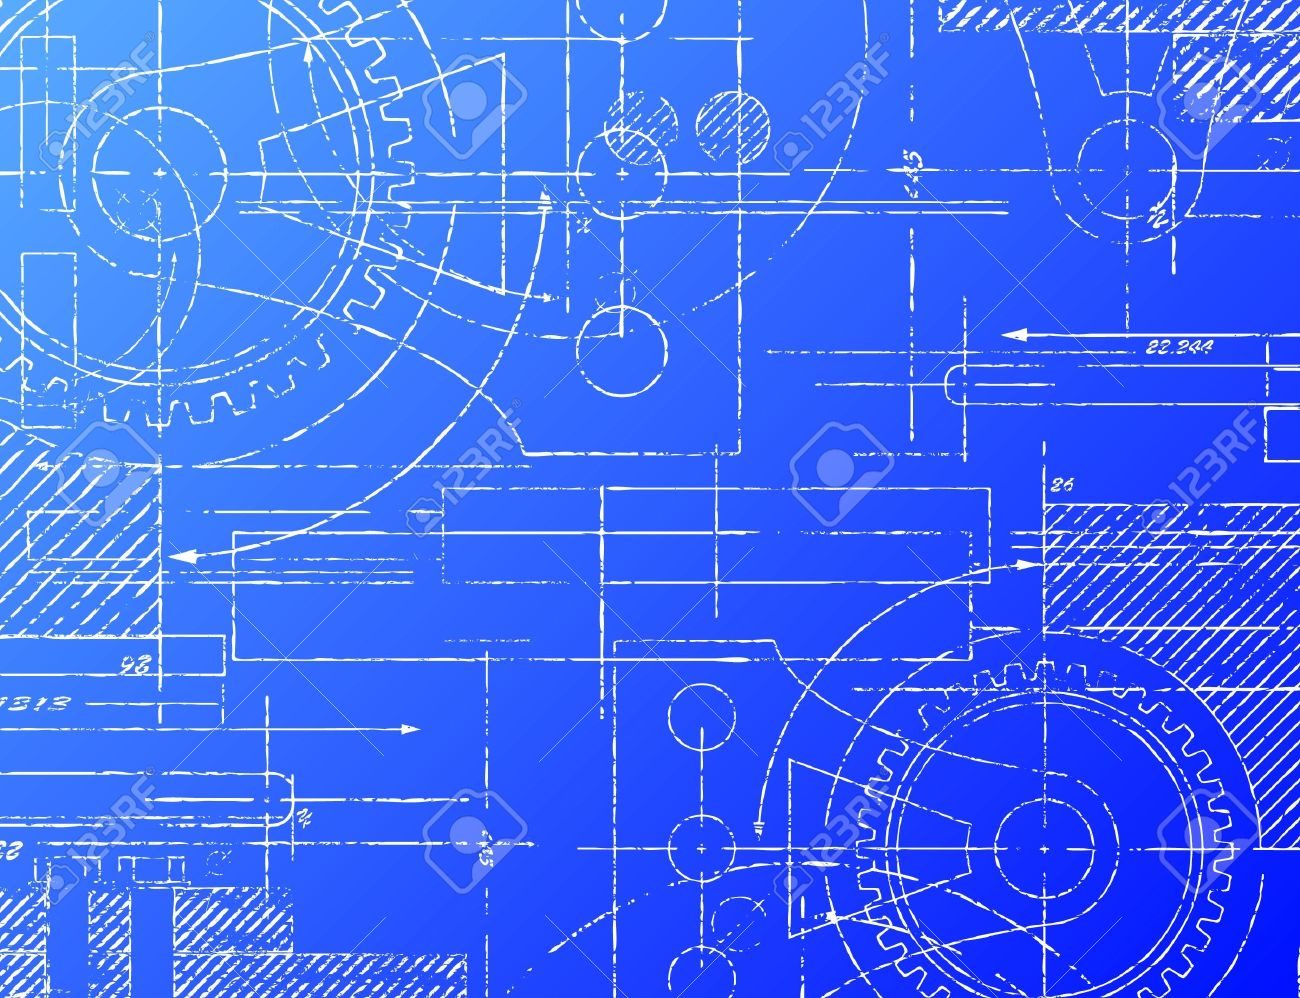 grungy technical blueprint illustration on blue background royalty